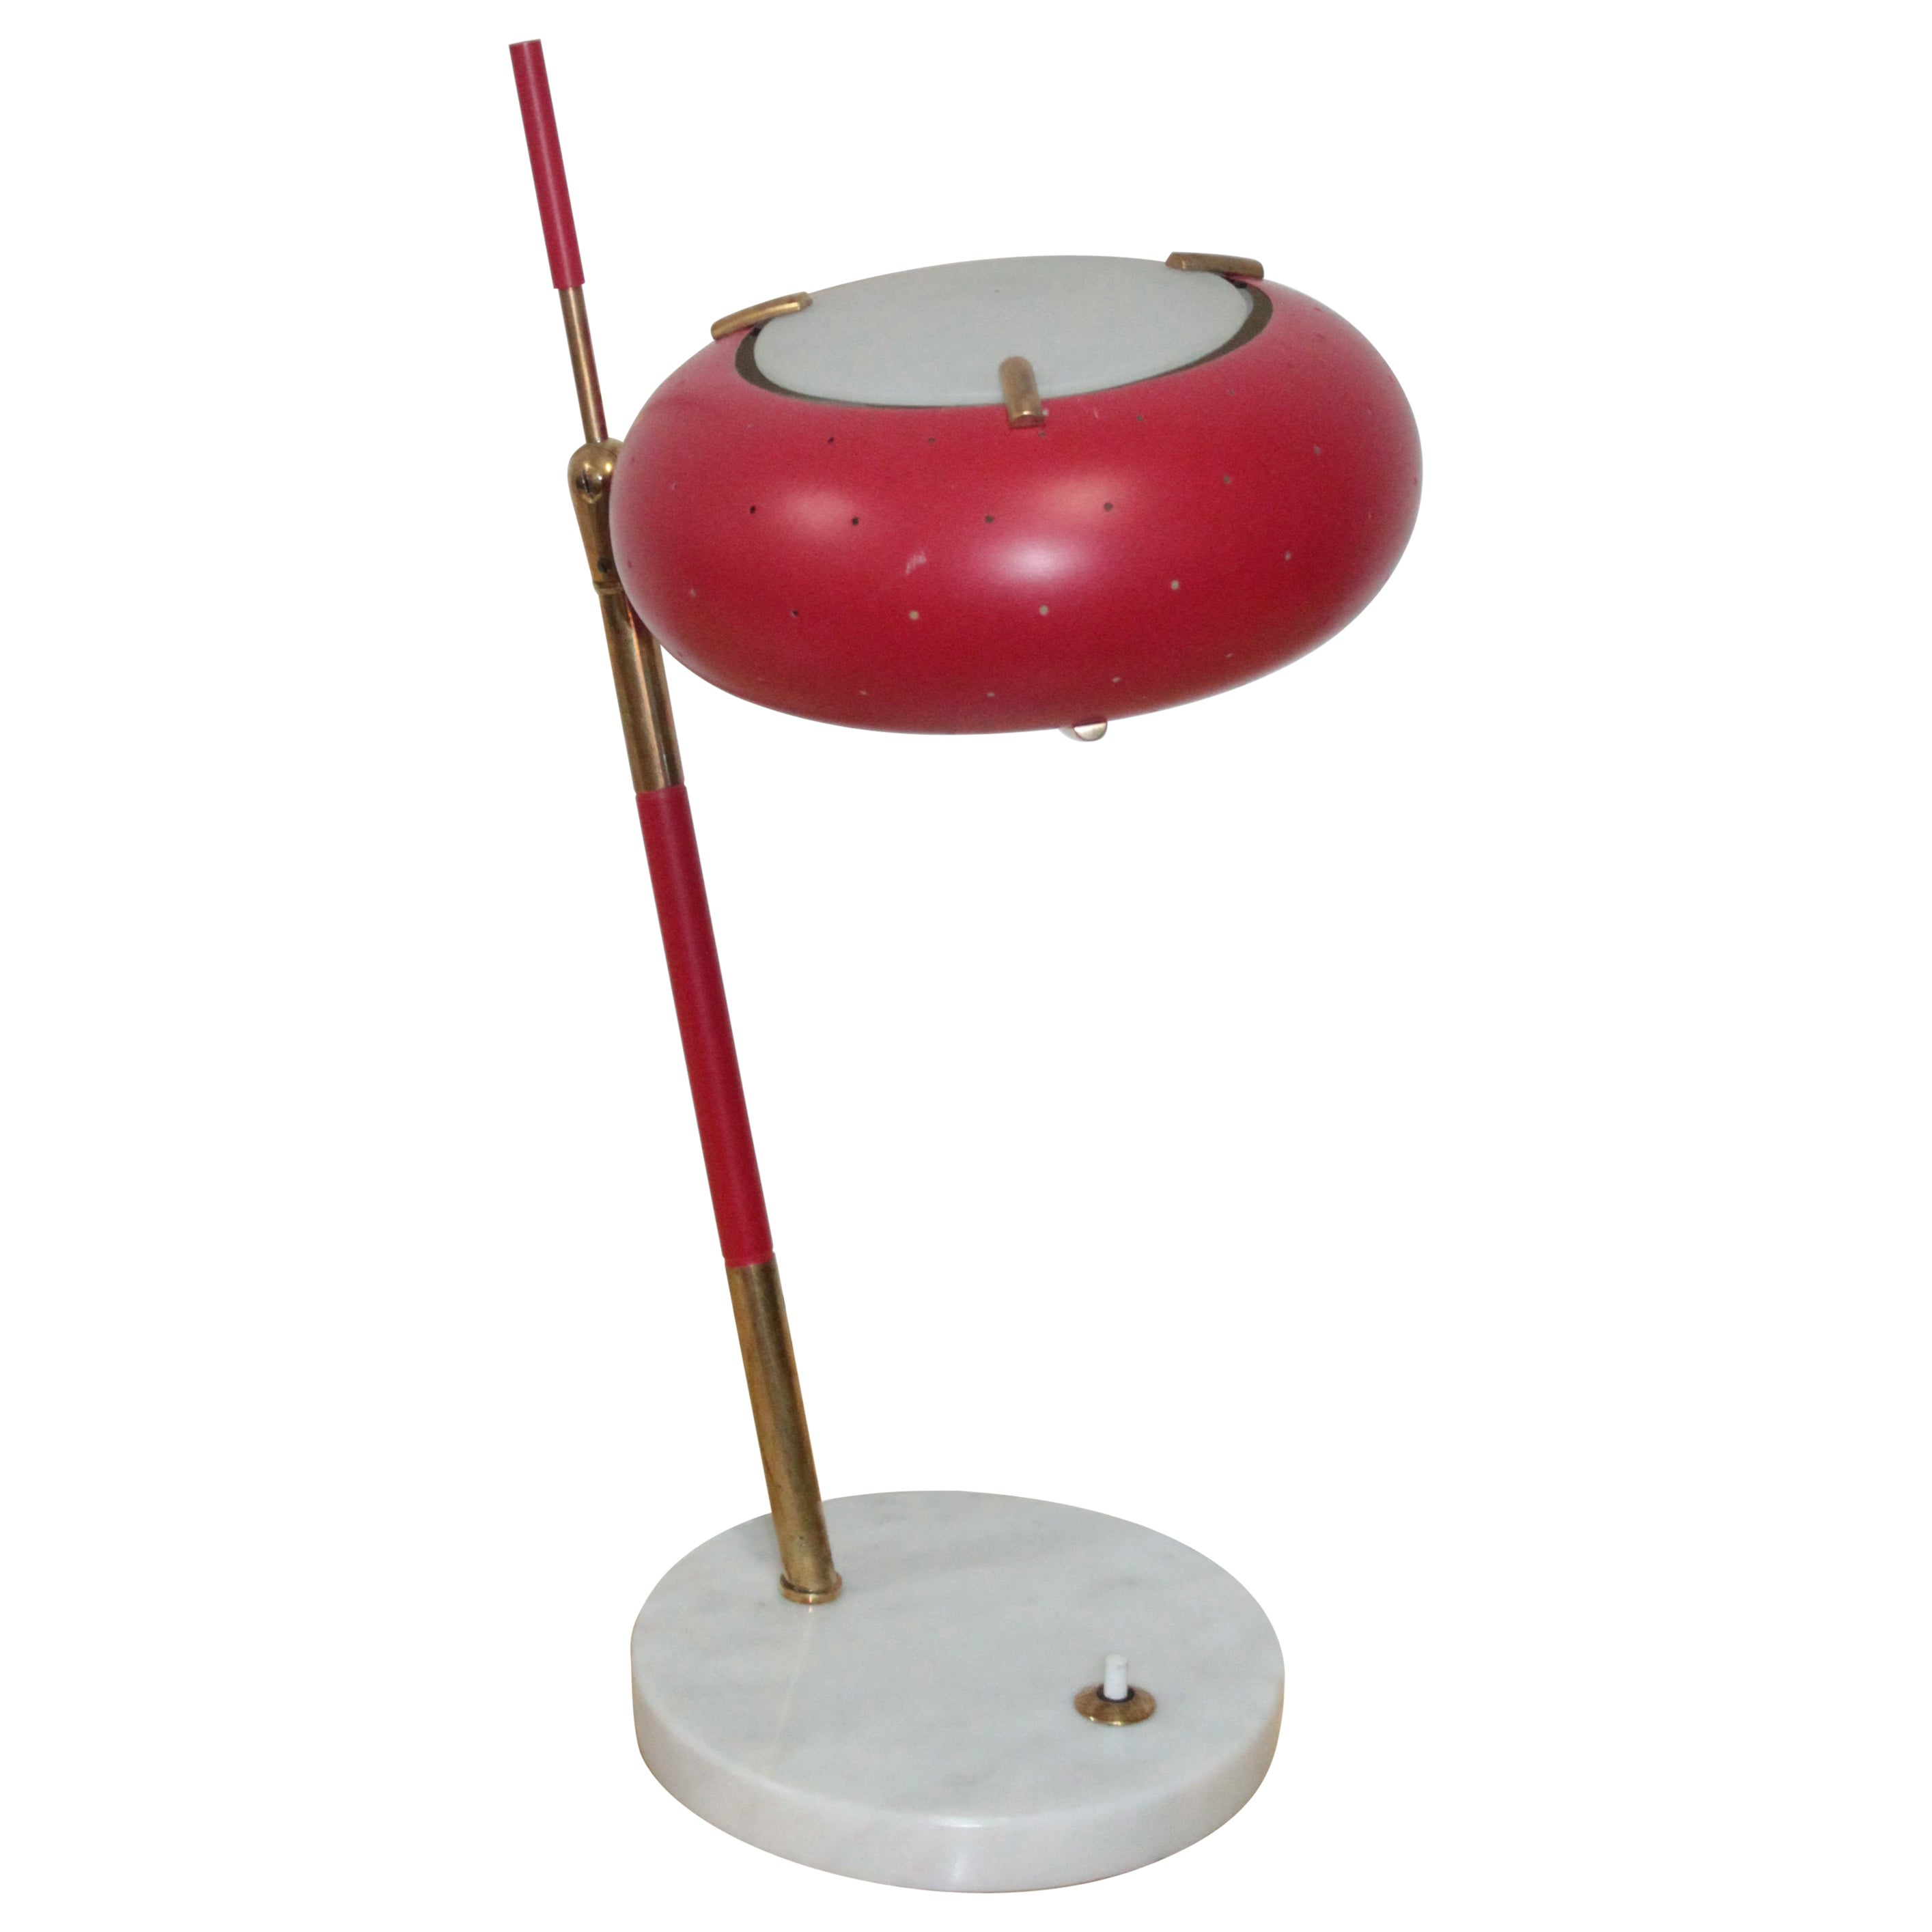 Midcentury Italian Desk Lamp by Stilux-Milano, 1950s